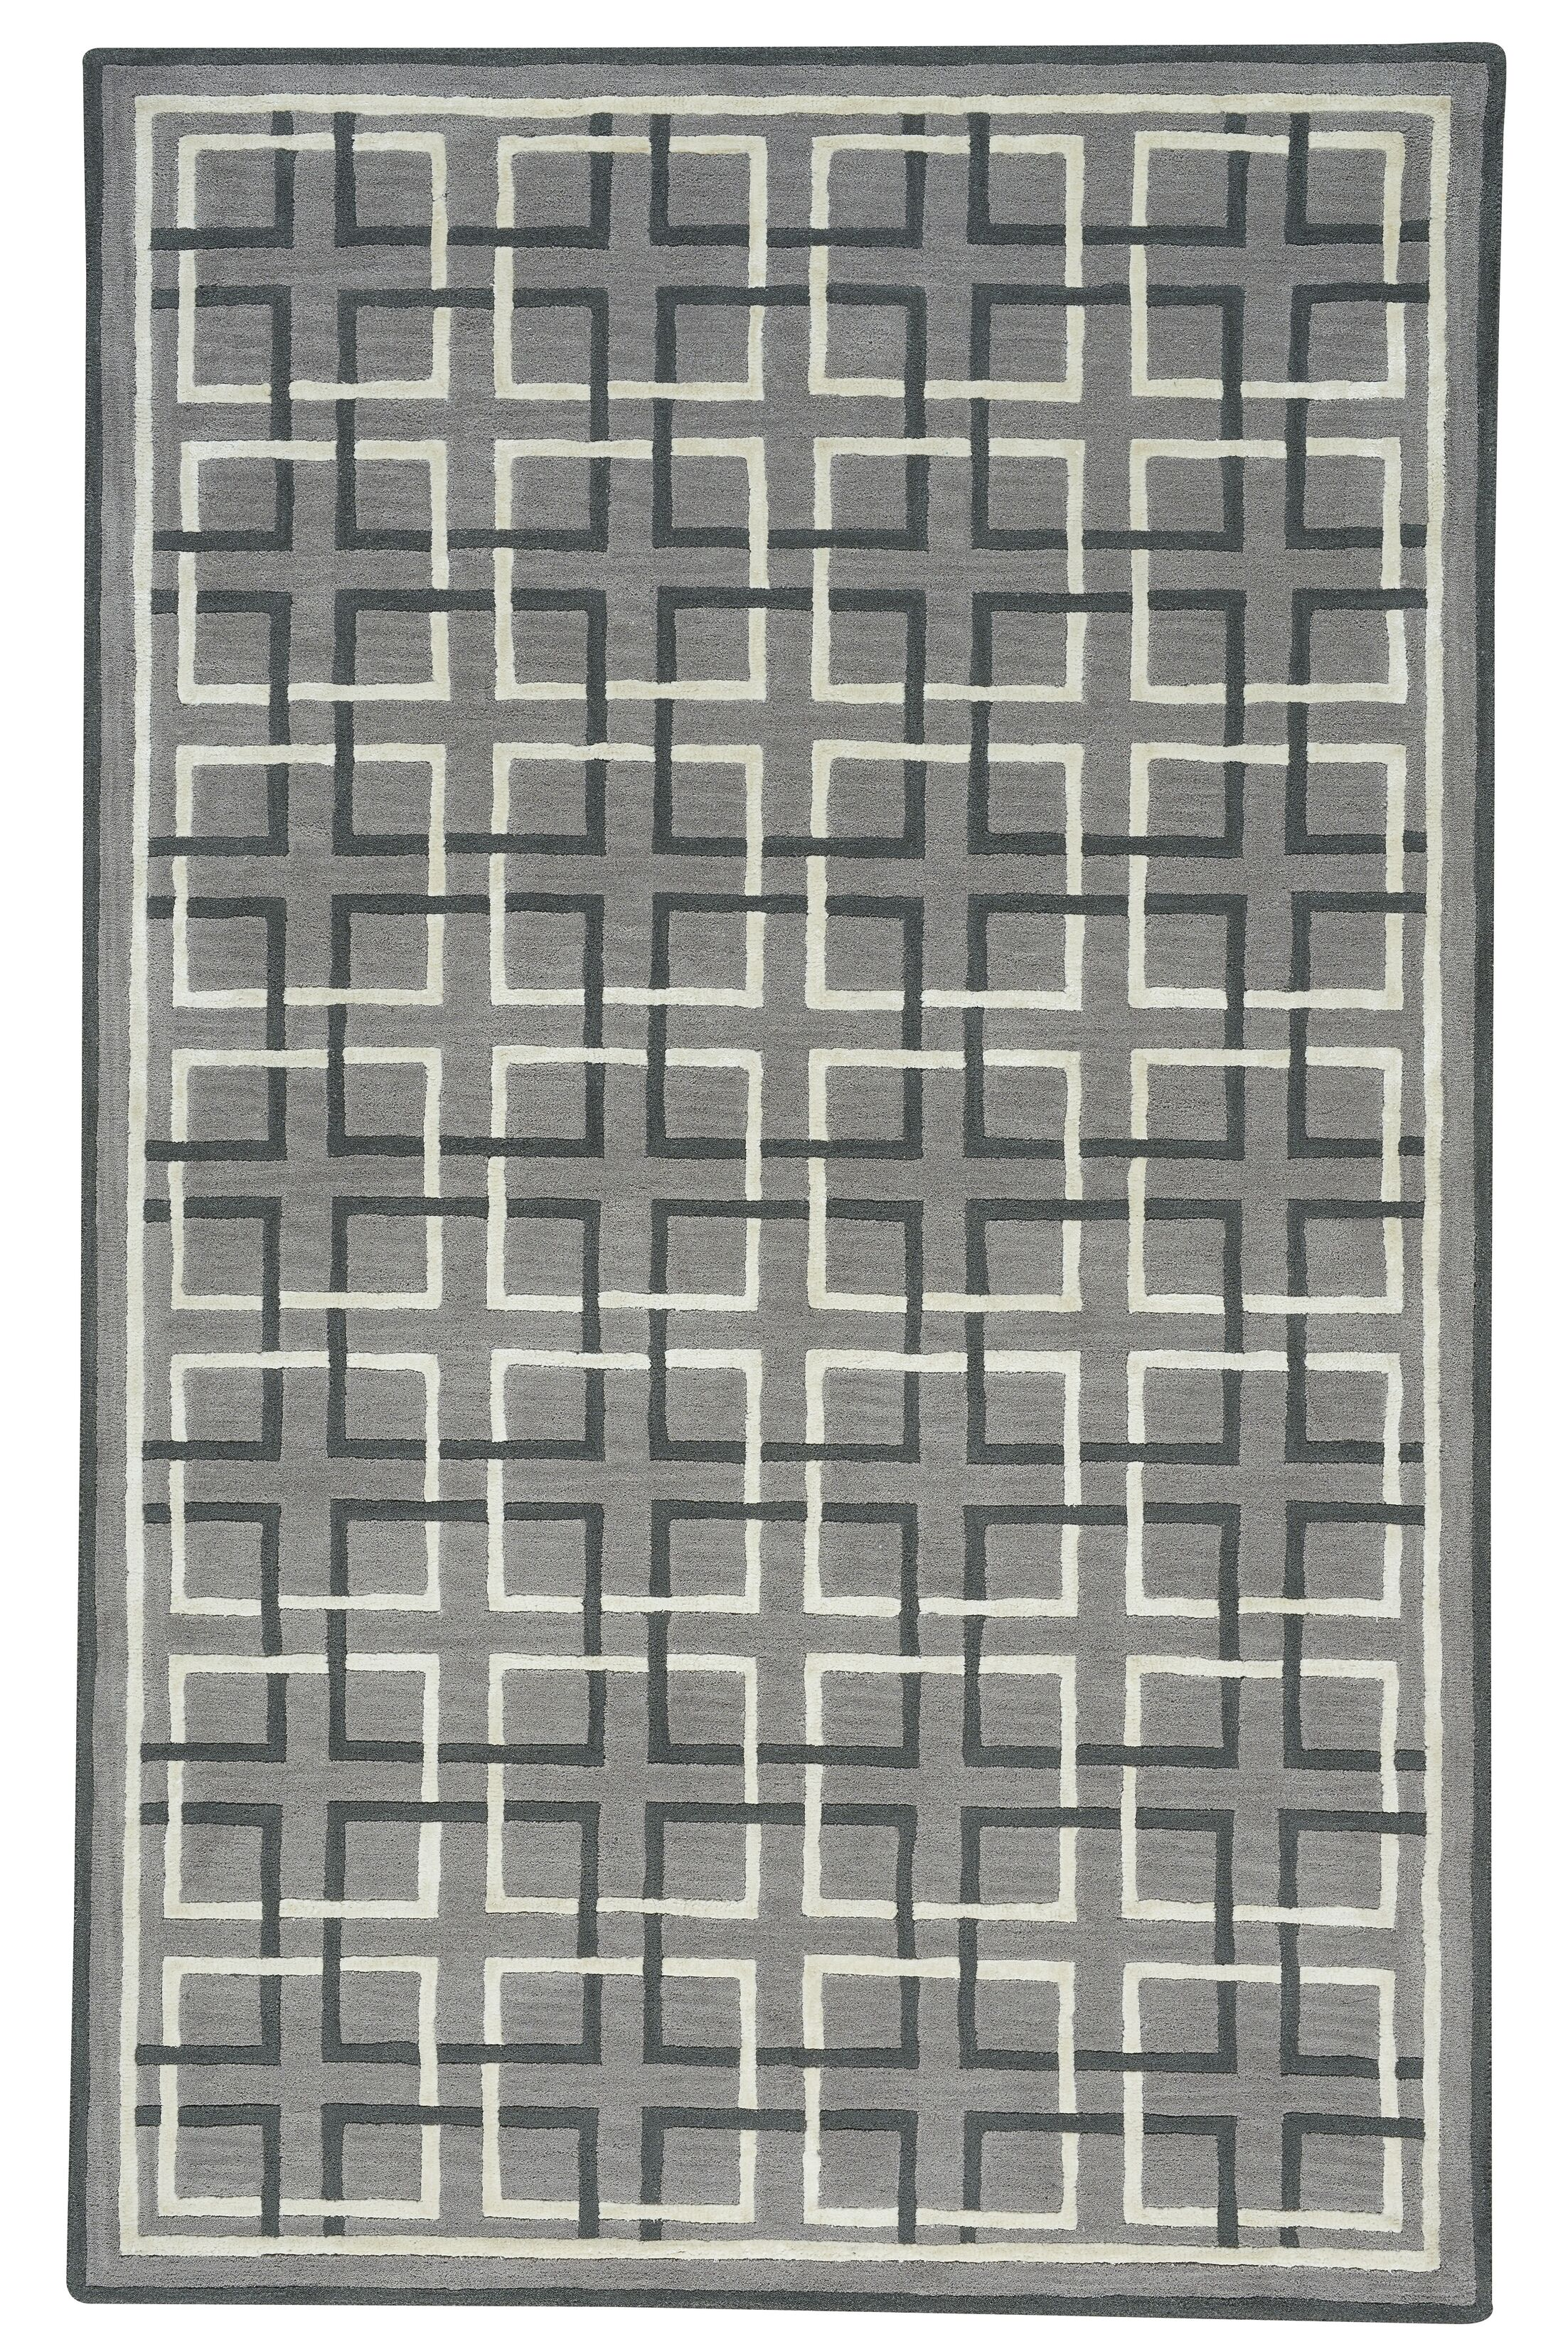 Wieland Framework Hand-Tufted Gray Area Rug Rug Size: Rectangle 8' x 10'